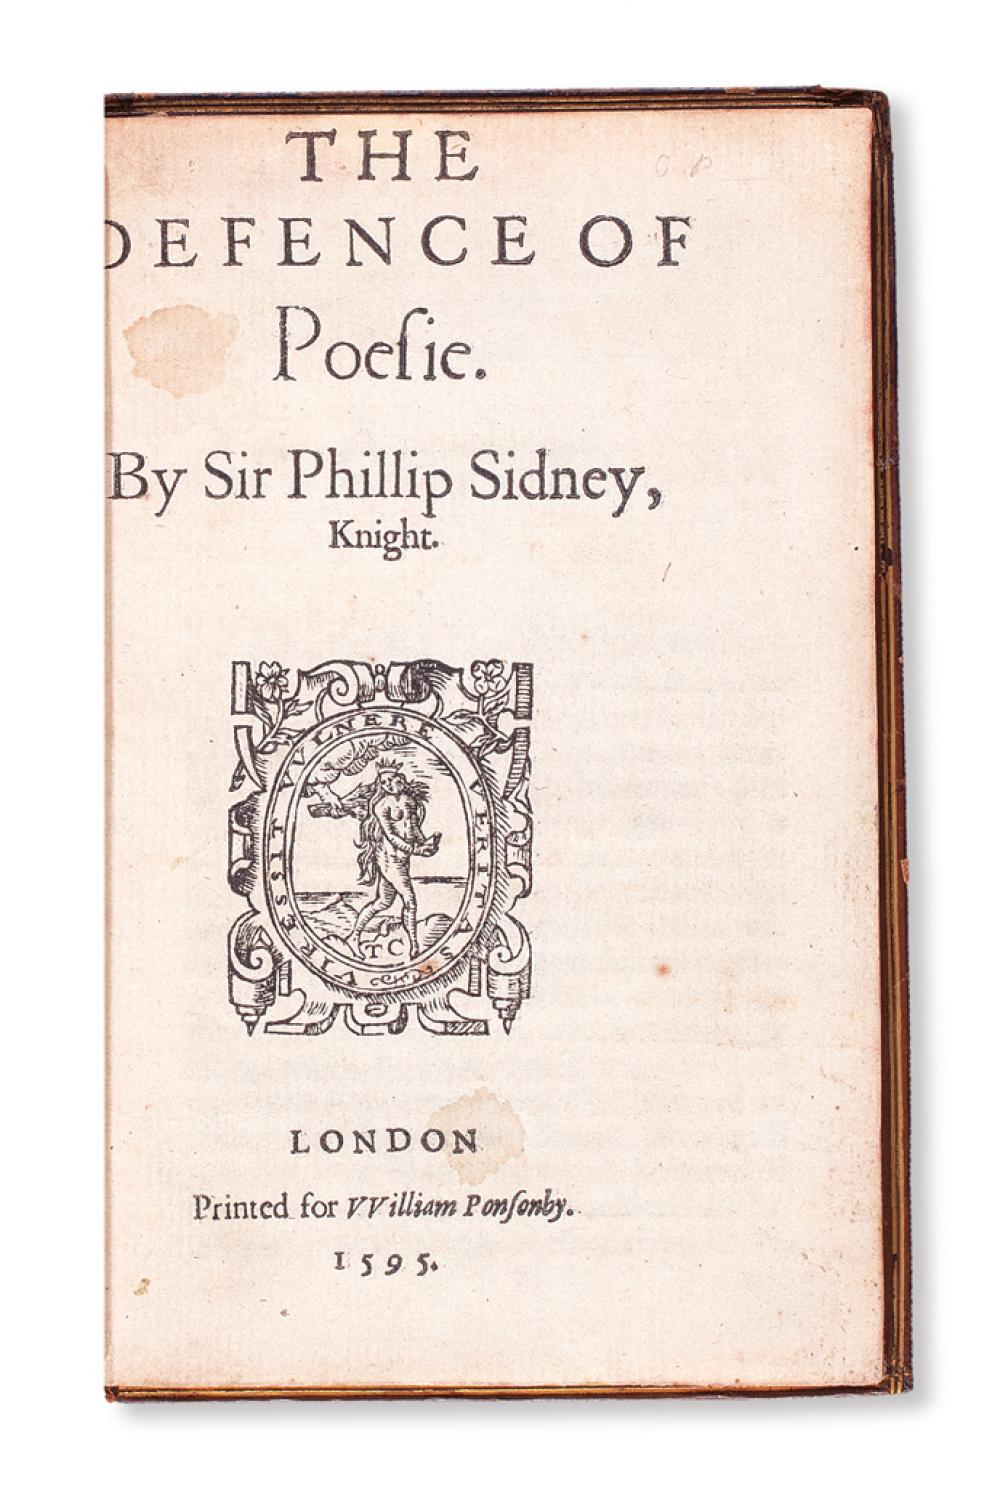 the defence of poesy When the right virtuous edward wotton and i were at the emperor's 1 court together, we gave ourselves to learn horsemanship of john pietro pugliano, one that with.